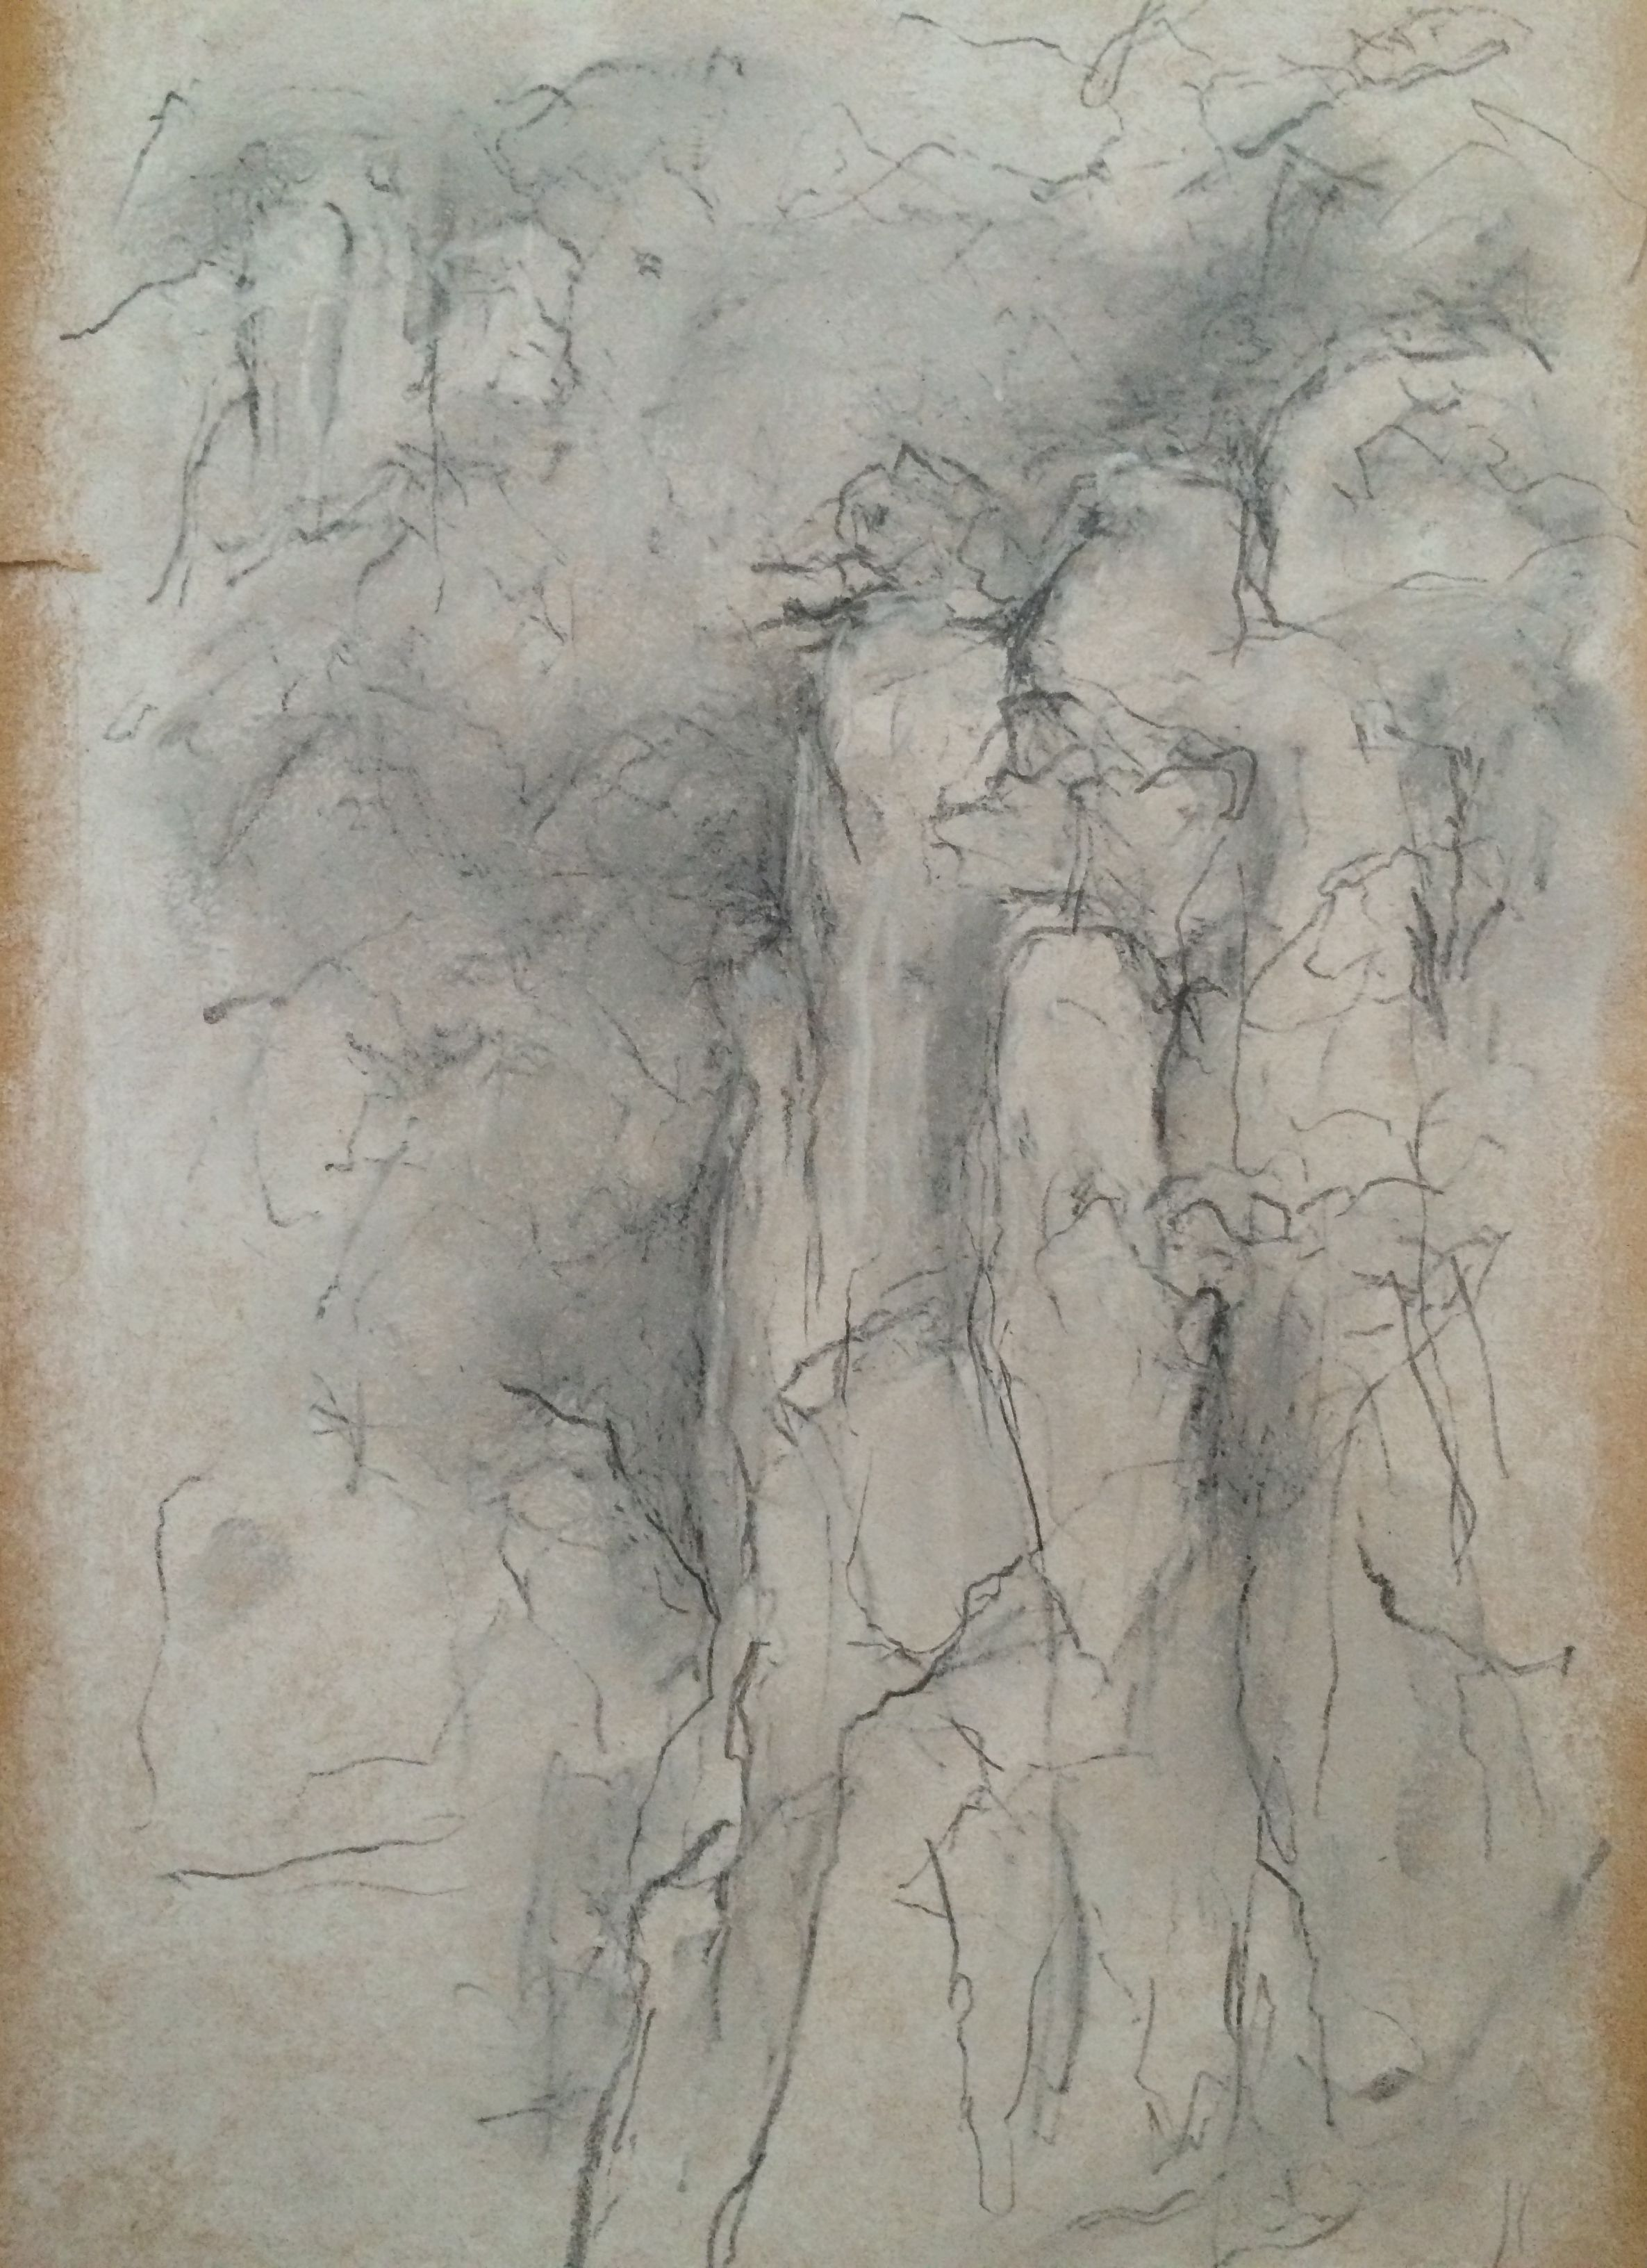 Ilanit edry white pastel and pencil on antique paper my drawings